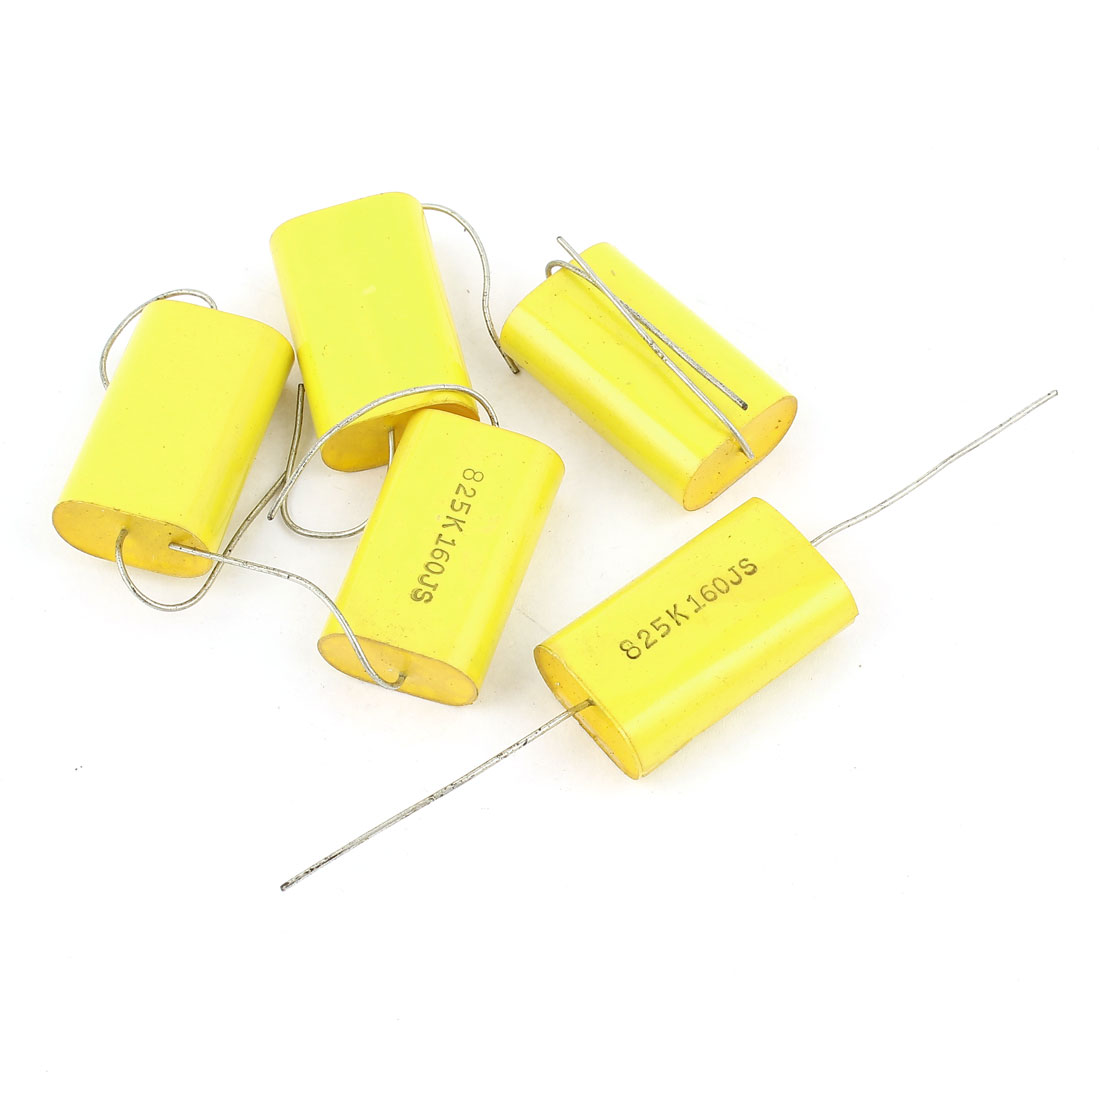 5Pcs AC 160V 5% Tolerance 8.2uf Capacitance Axial Lead Through Hole Polyster Tape Metallized Film Capacitor Yellow